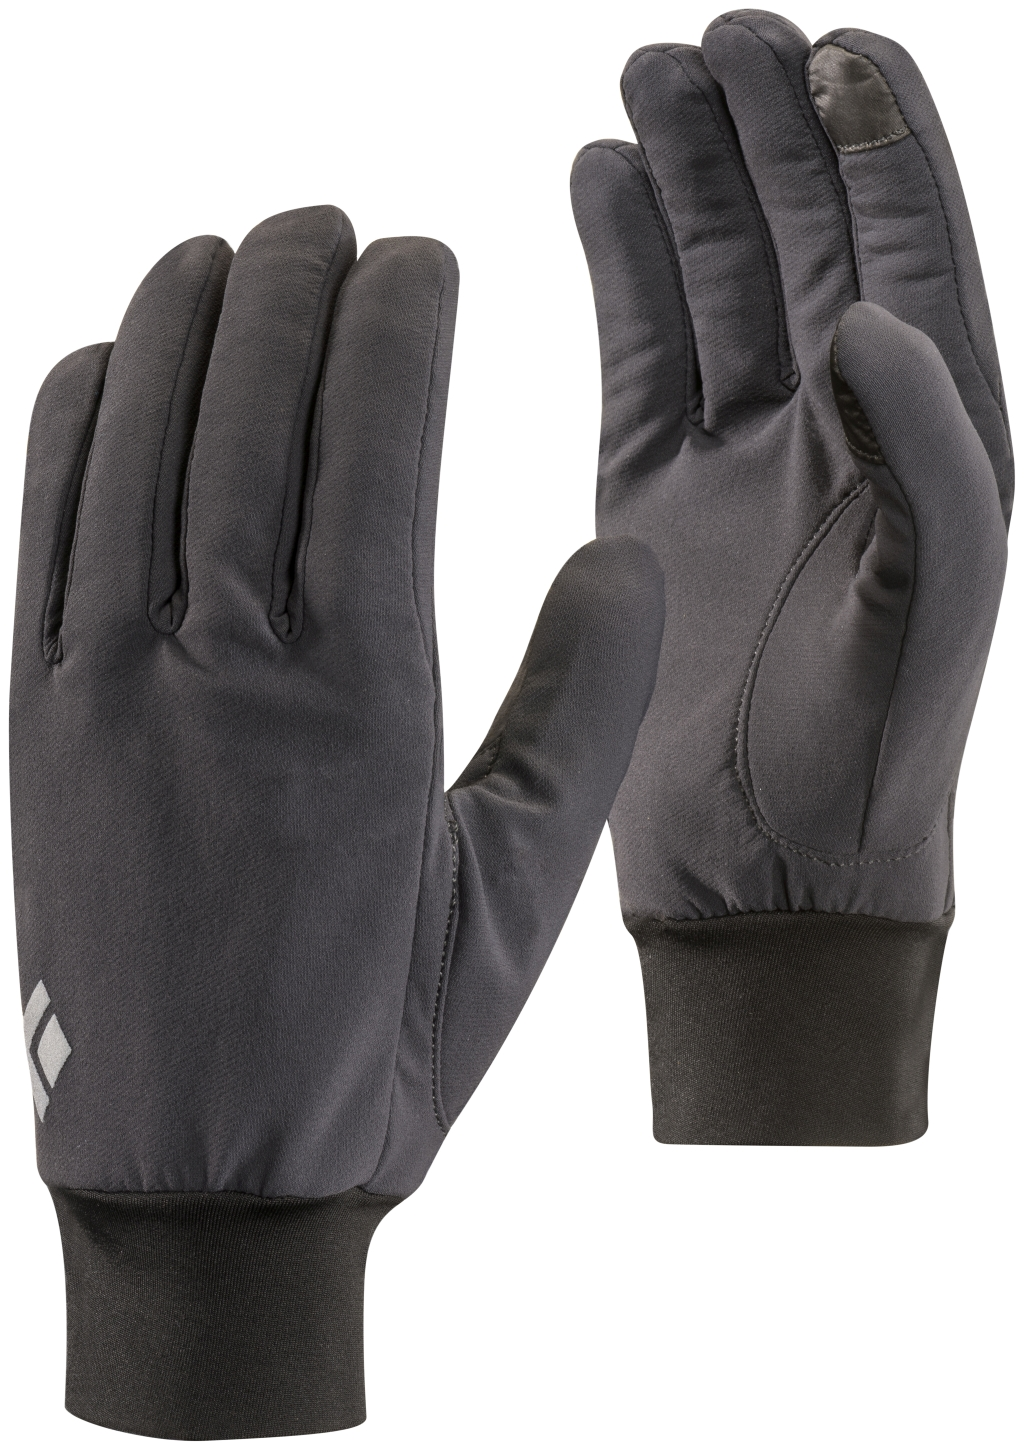 Black Diamond Lightweight Softshell Gloves SMOKE-30